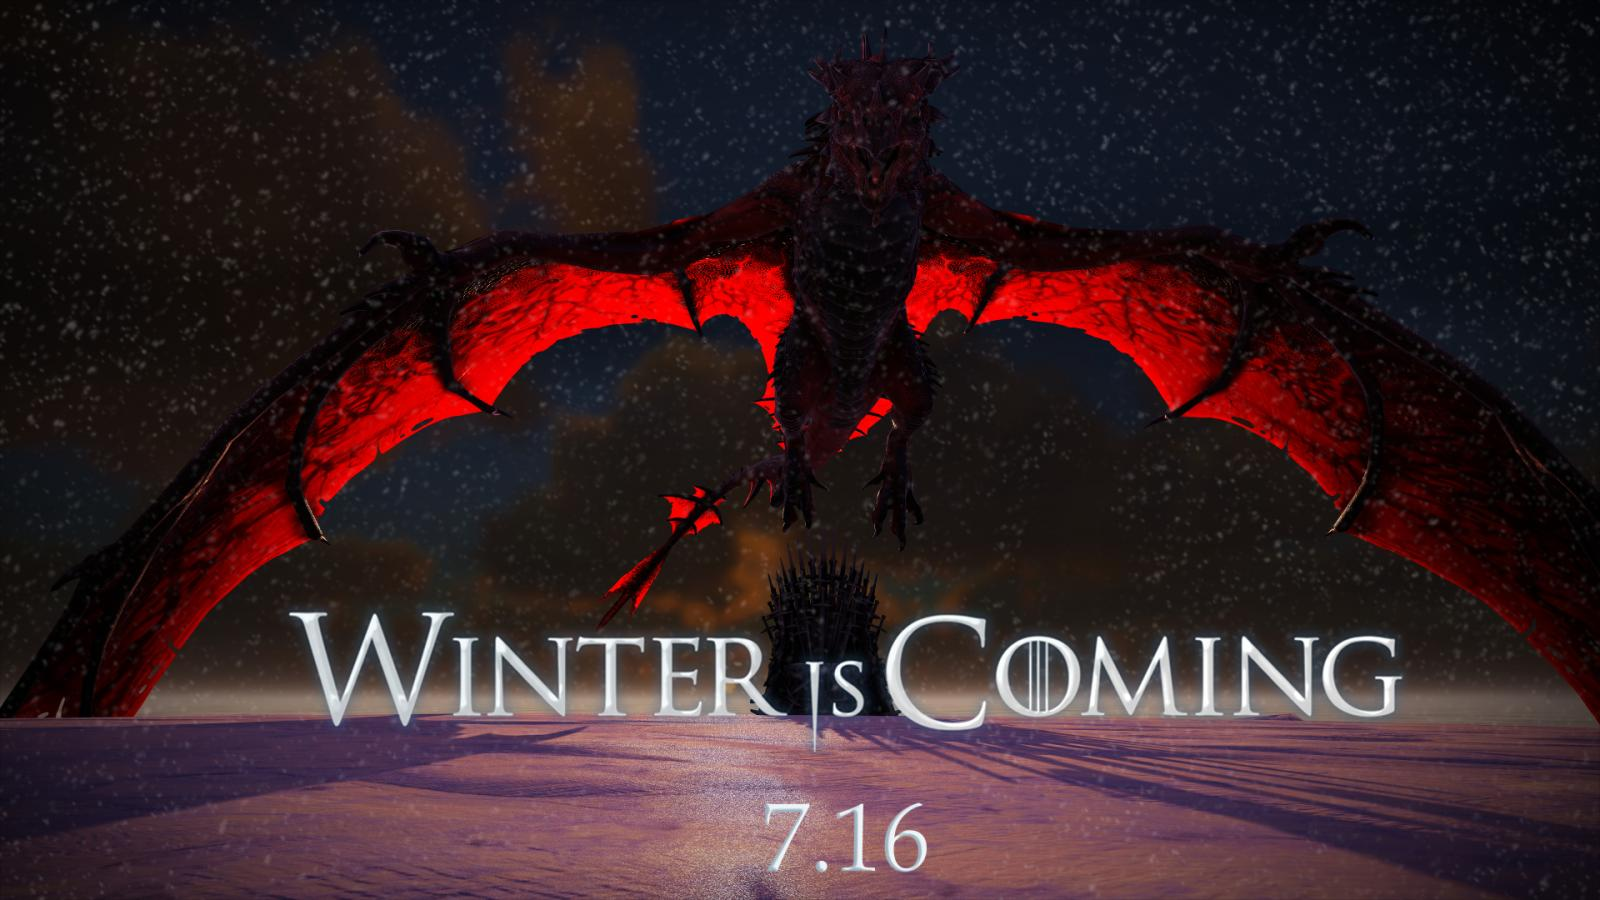 large.5931067c0fa84_BlueDragon-WinterisComing7.16sta.jpg